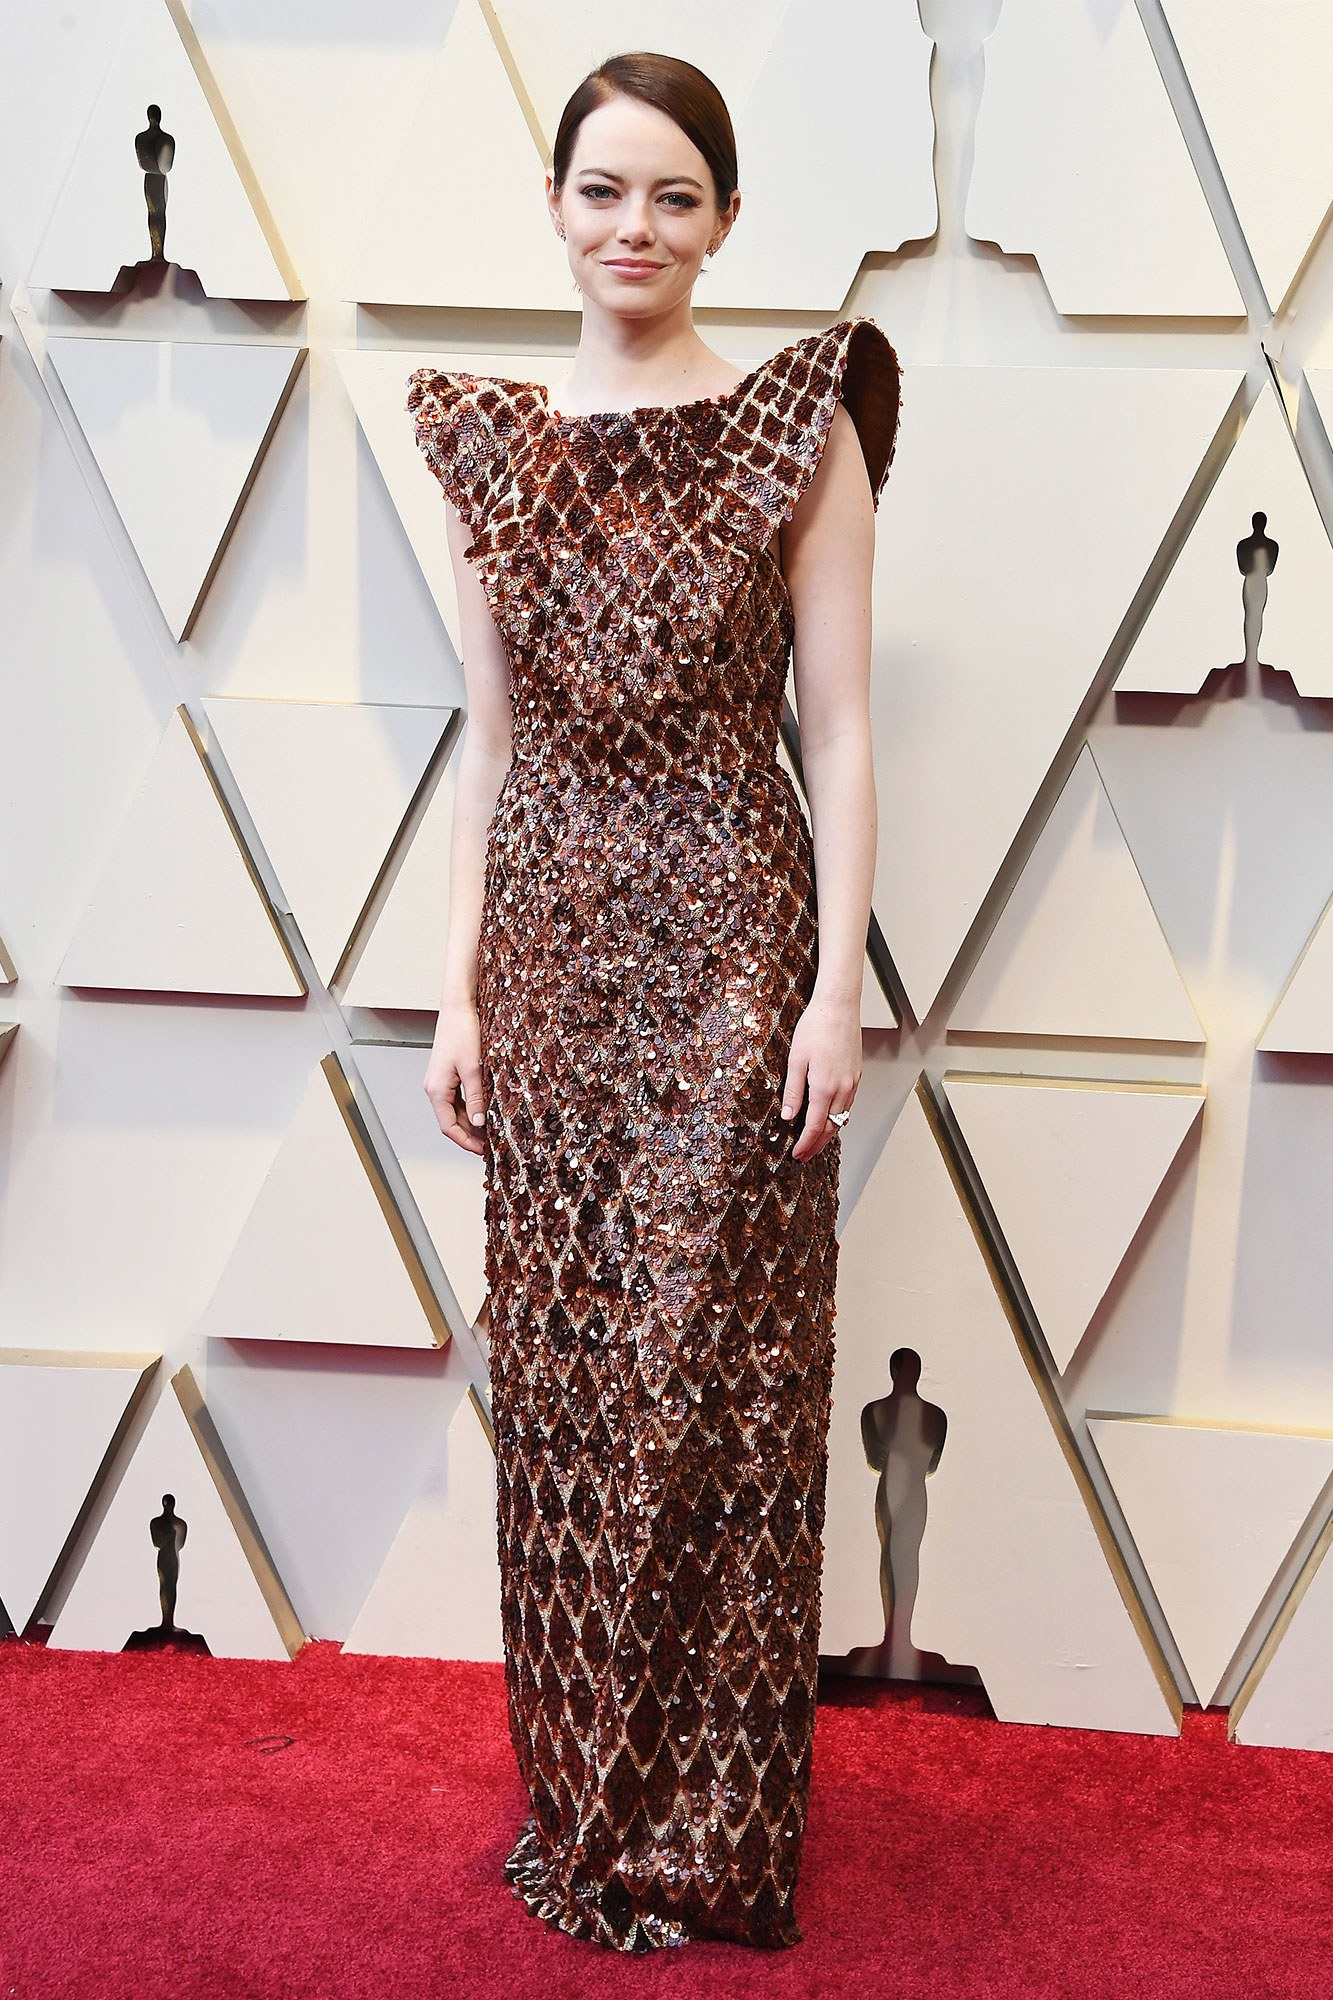 EMMA STONE - LOUIS VUITTON: All elements of this look are perfect. From her hair colour, to the shoulders, to the all over embellishment. On point!